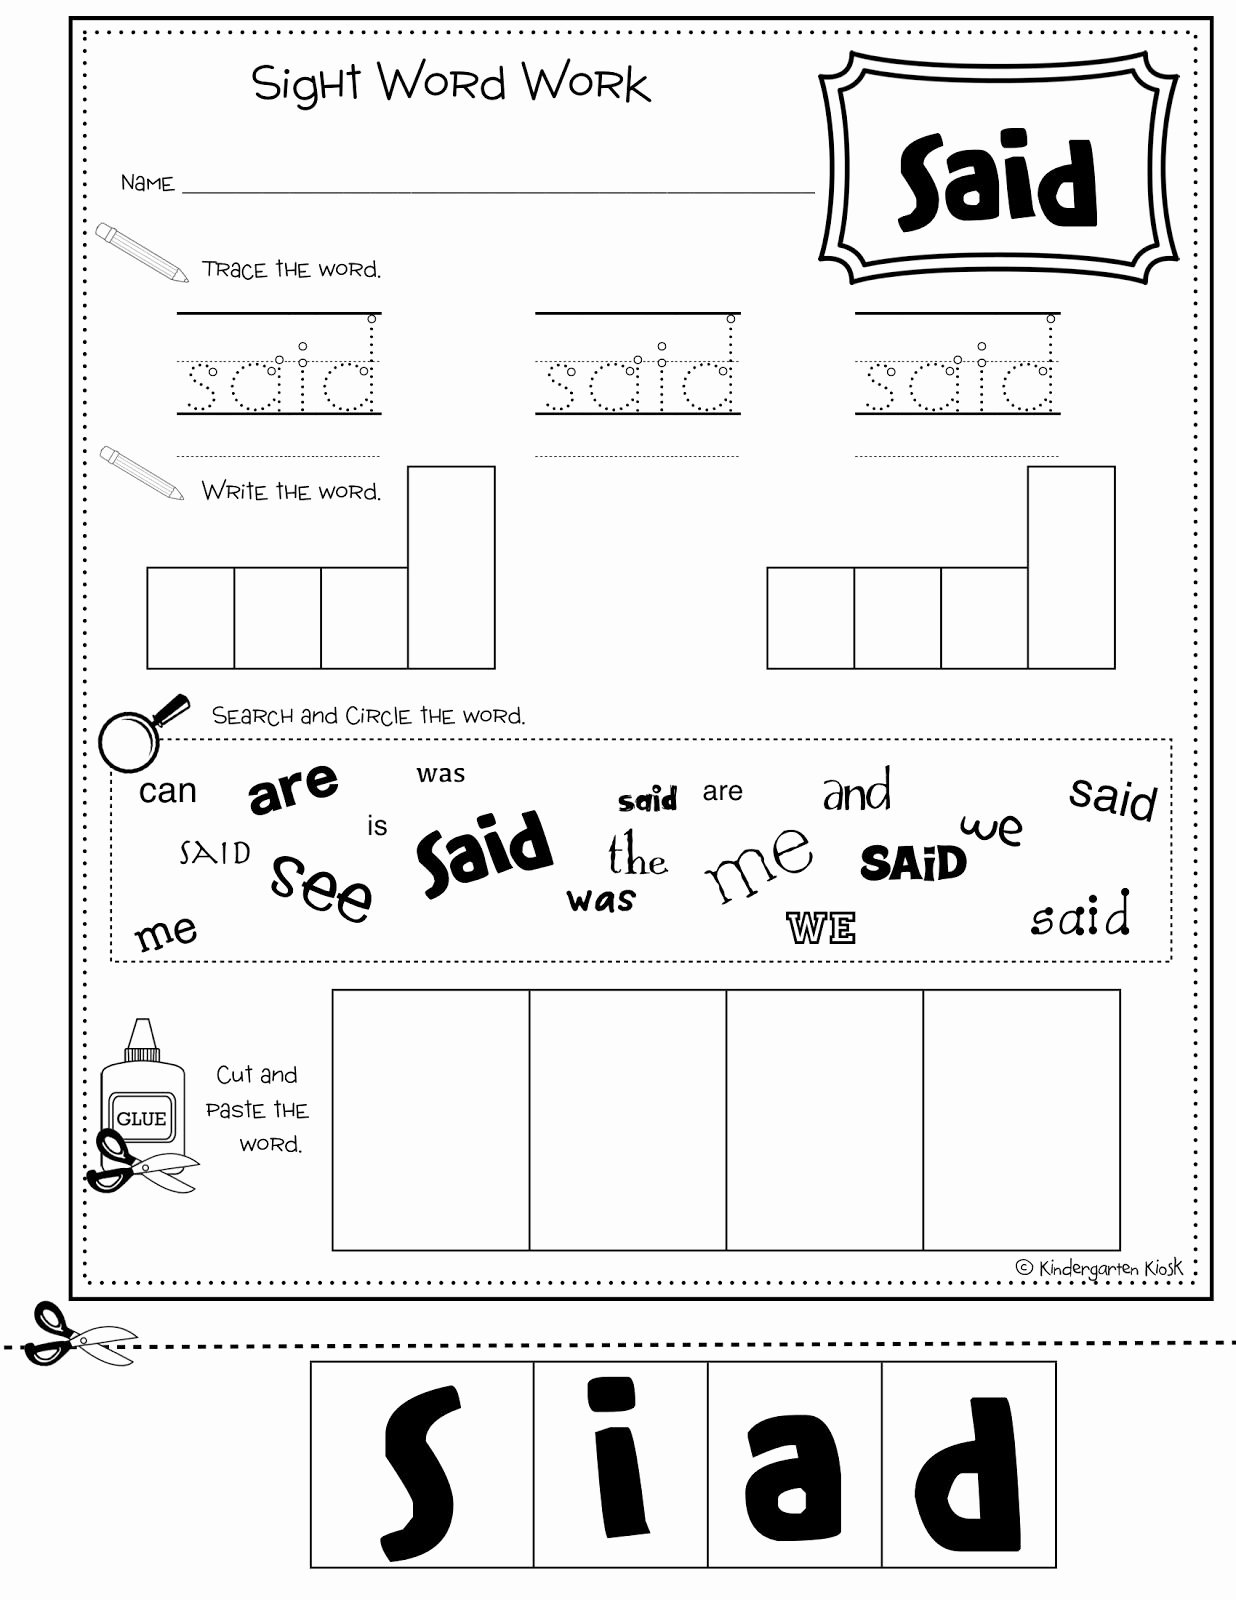 50 Sight Words Worksheet For Kindergarten